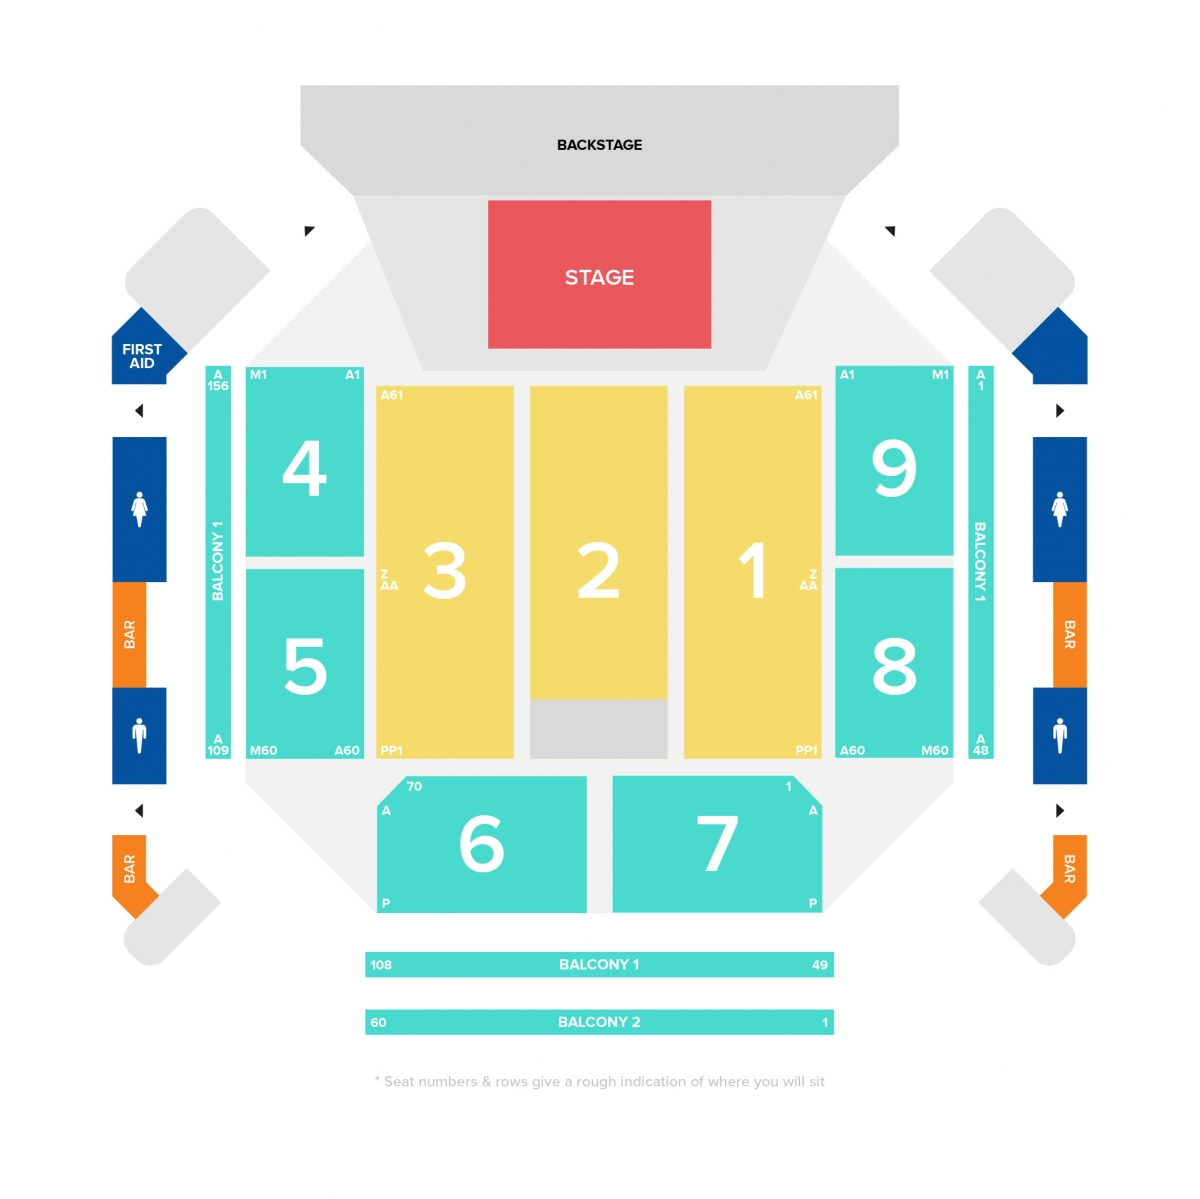 Seating Plans | Motorpoint Arena Cardiff